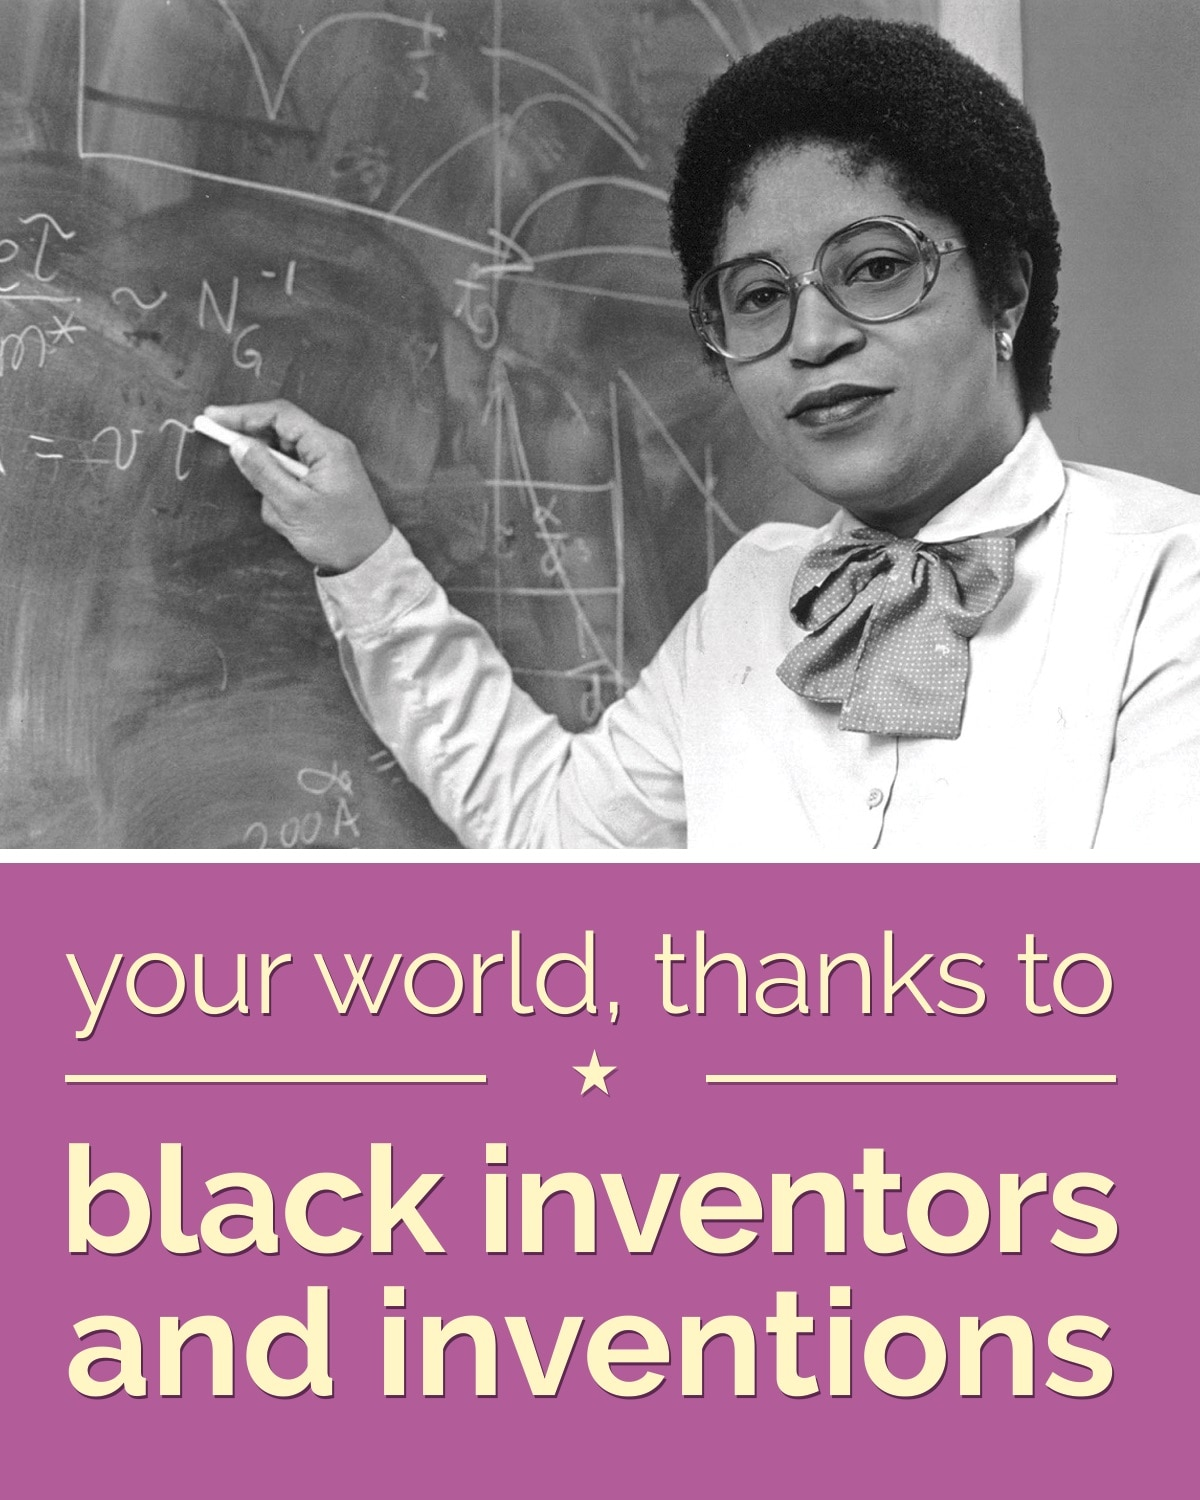 life-black-inventors-and-inventions